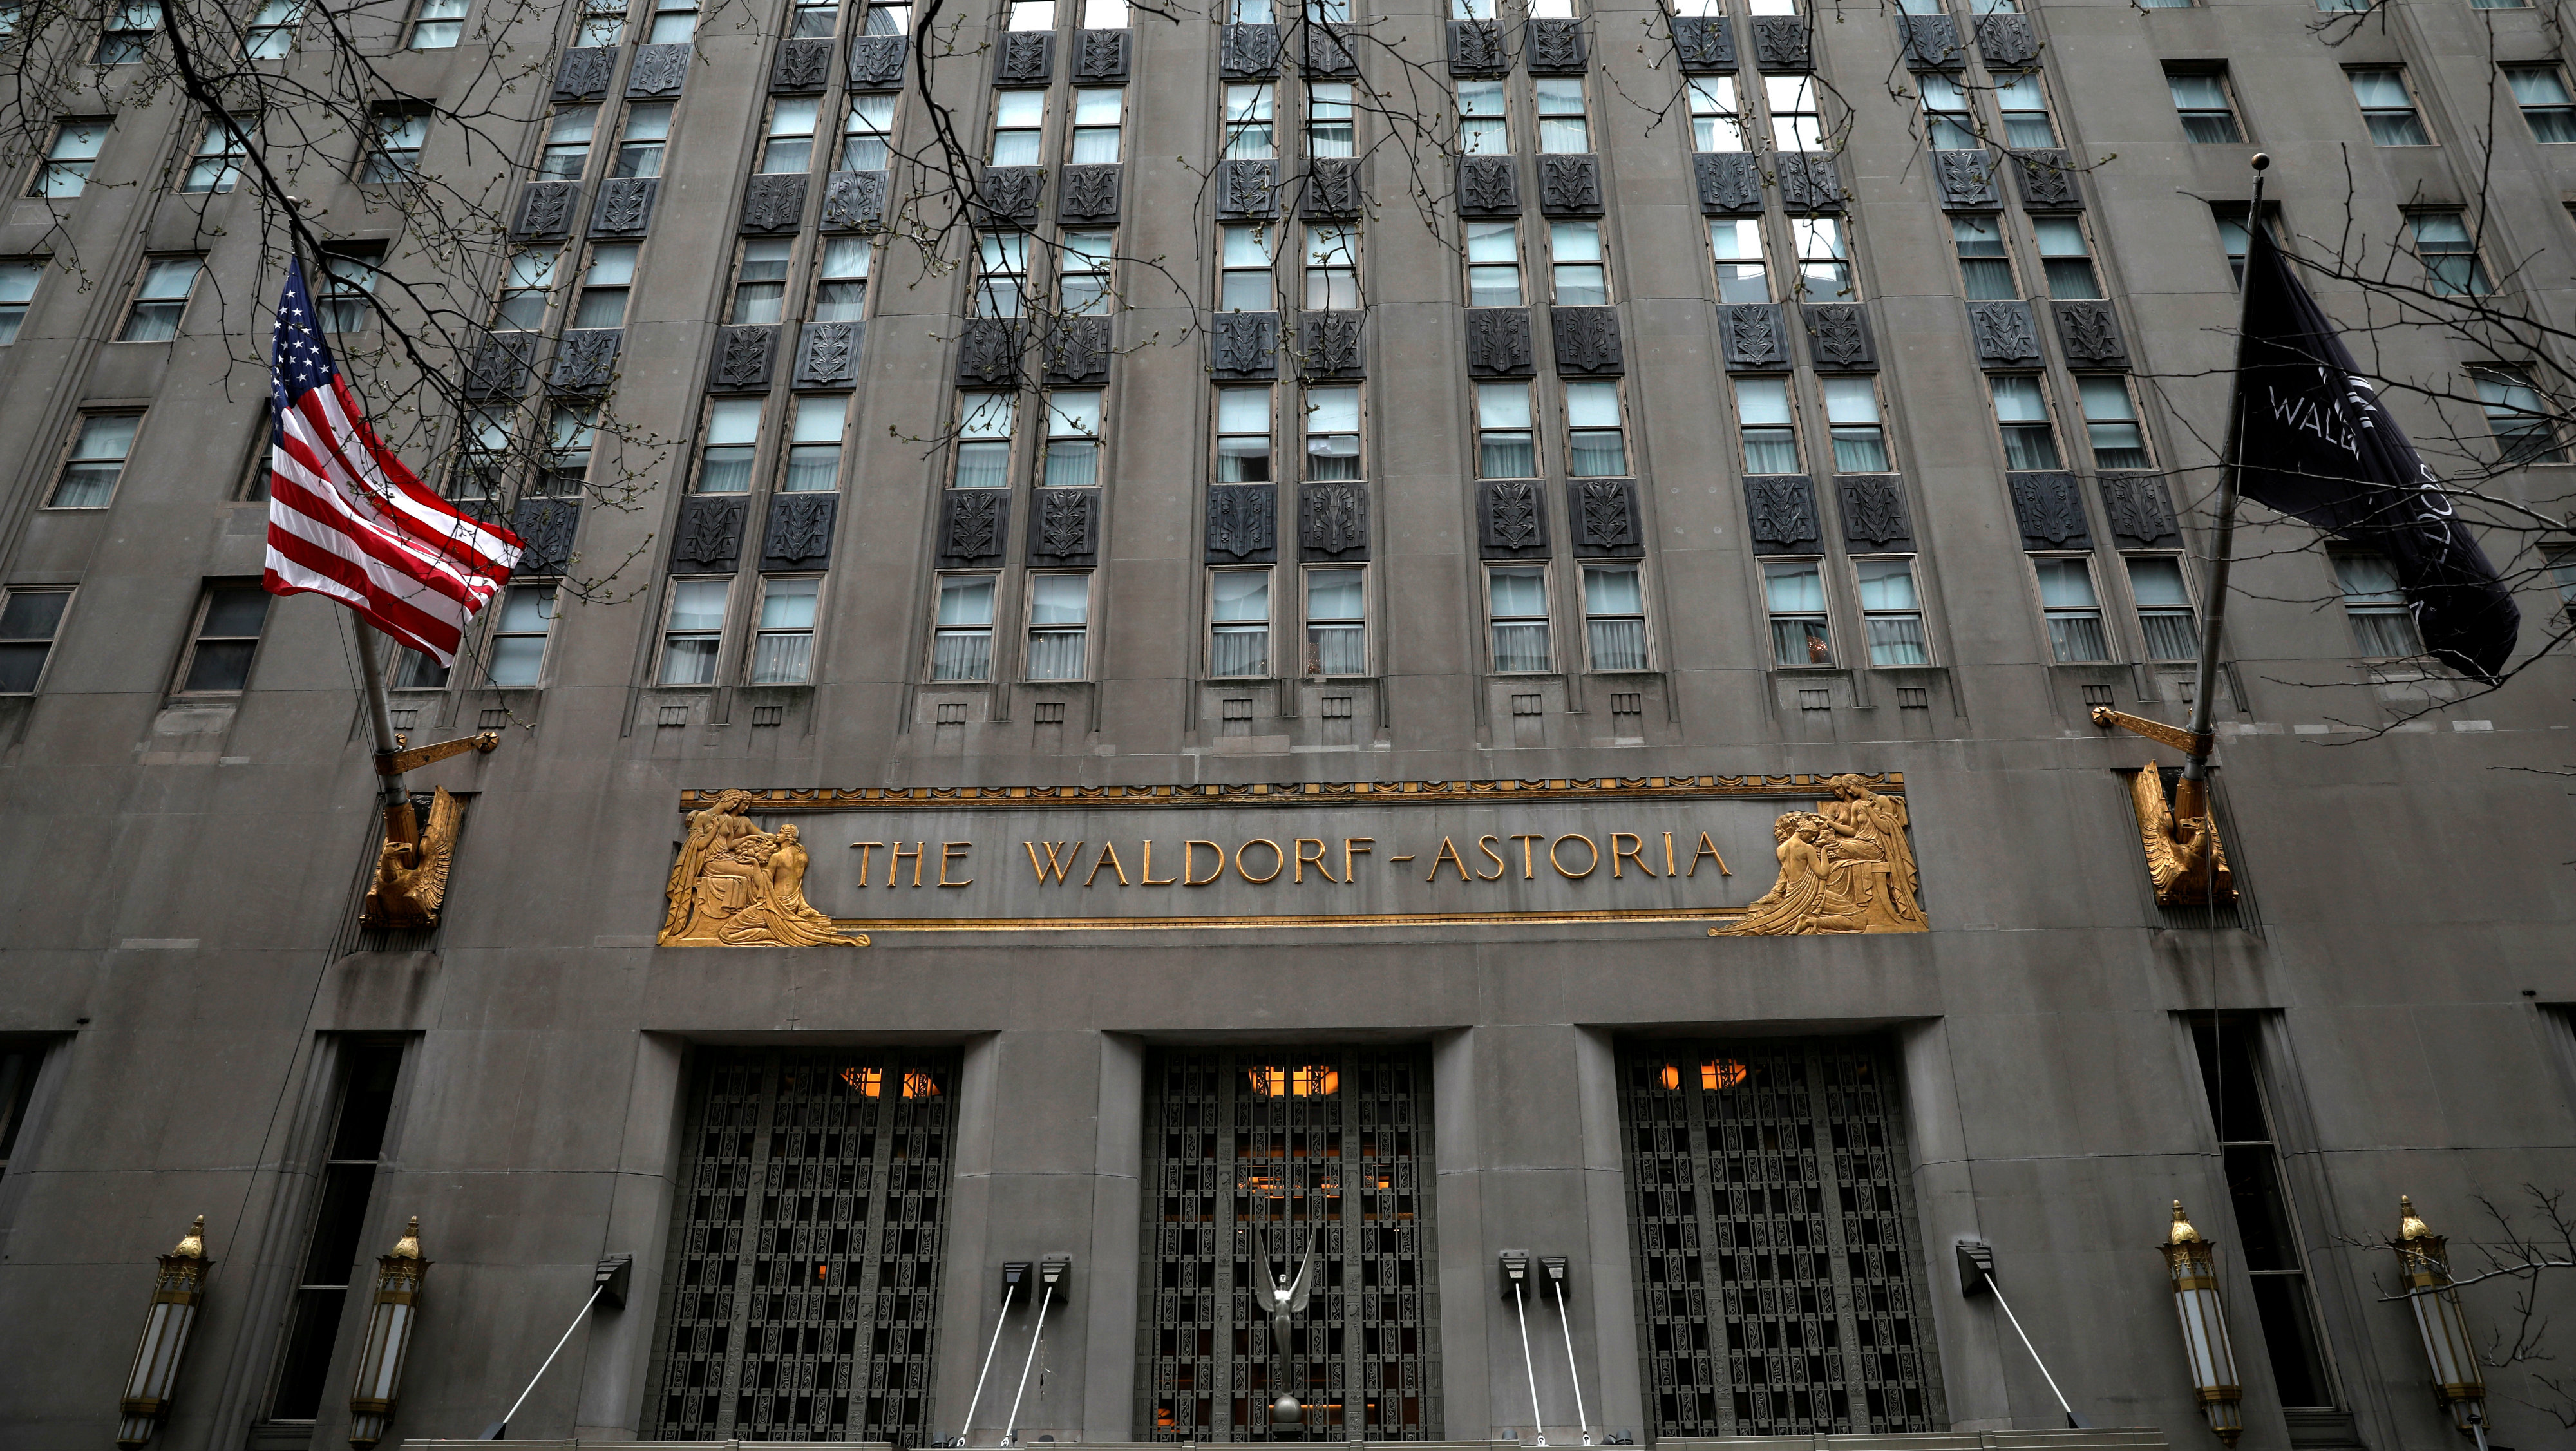 An exterior view of the world famous Waldorf Astoria Hotel in midtown Manhattan in New York City